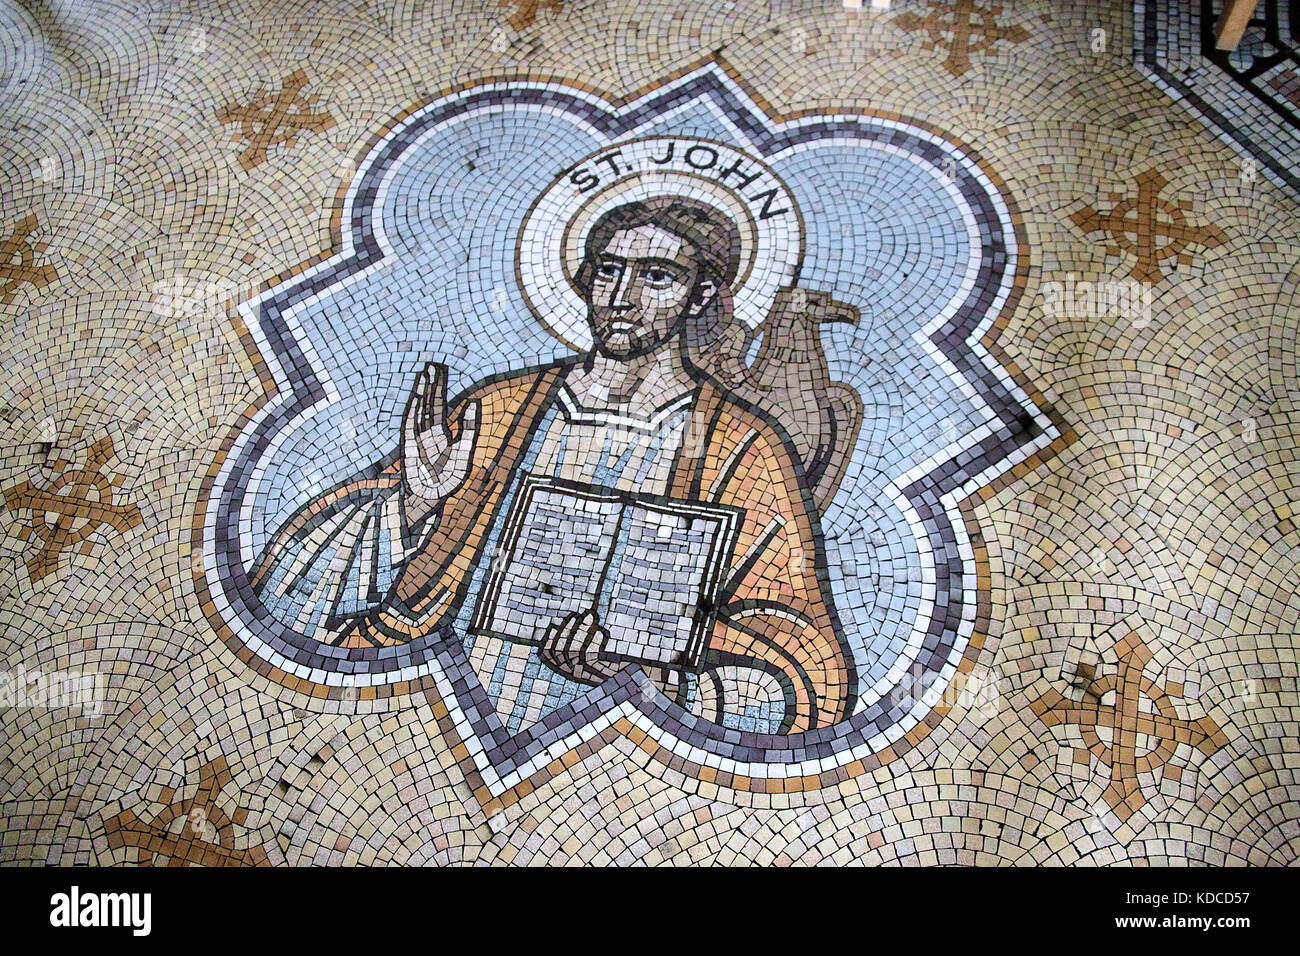 Mosaic floor at the Roman Catholic Salford Cathedral of St John the Evangelist in Greater Manchester - Stock Image